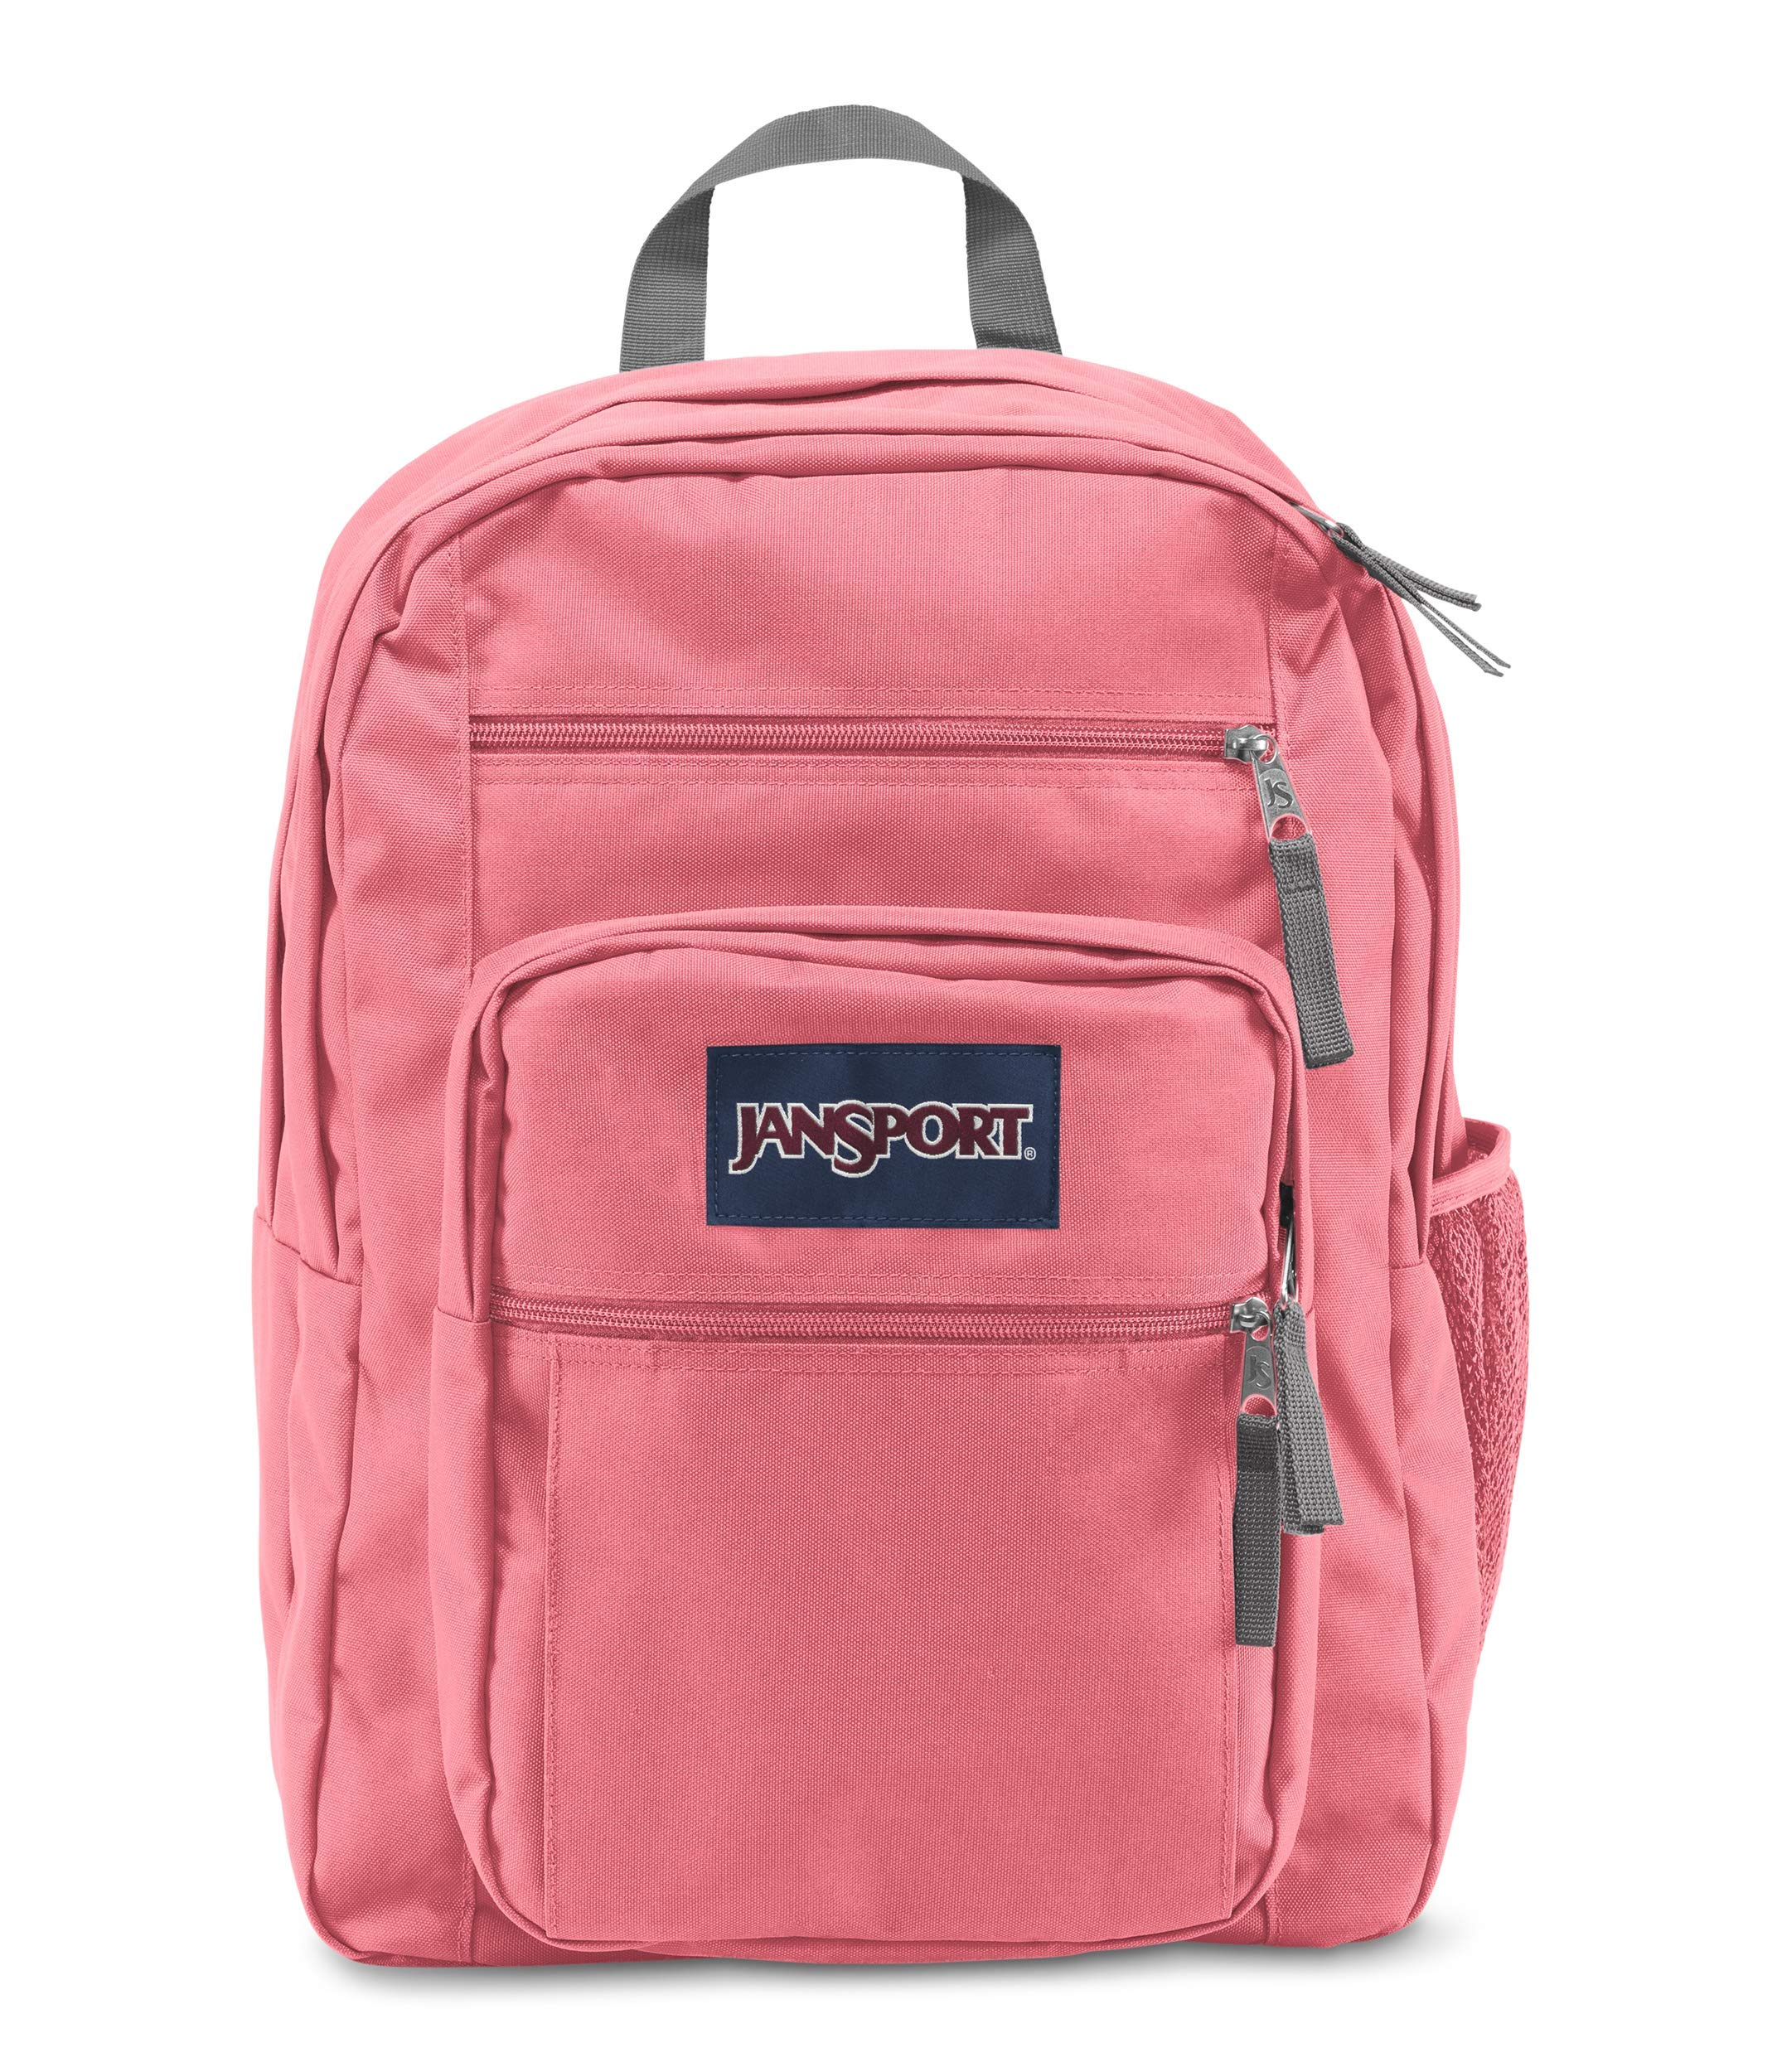 JanSport Big Student Backpack - 15-inch Laptop School Pack, Strawberry Pink by JanSport